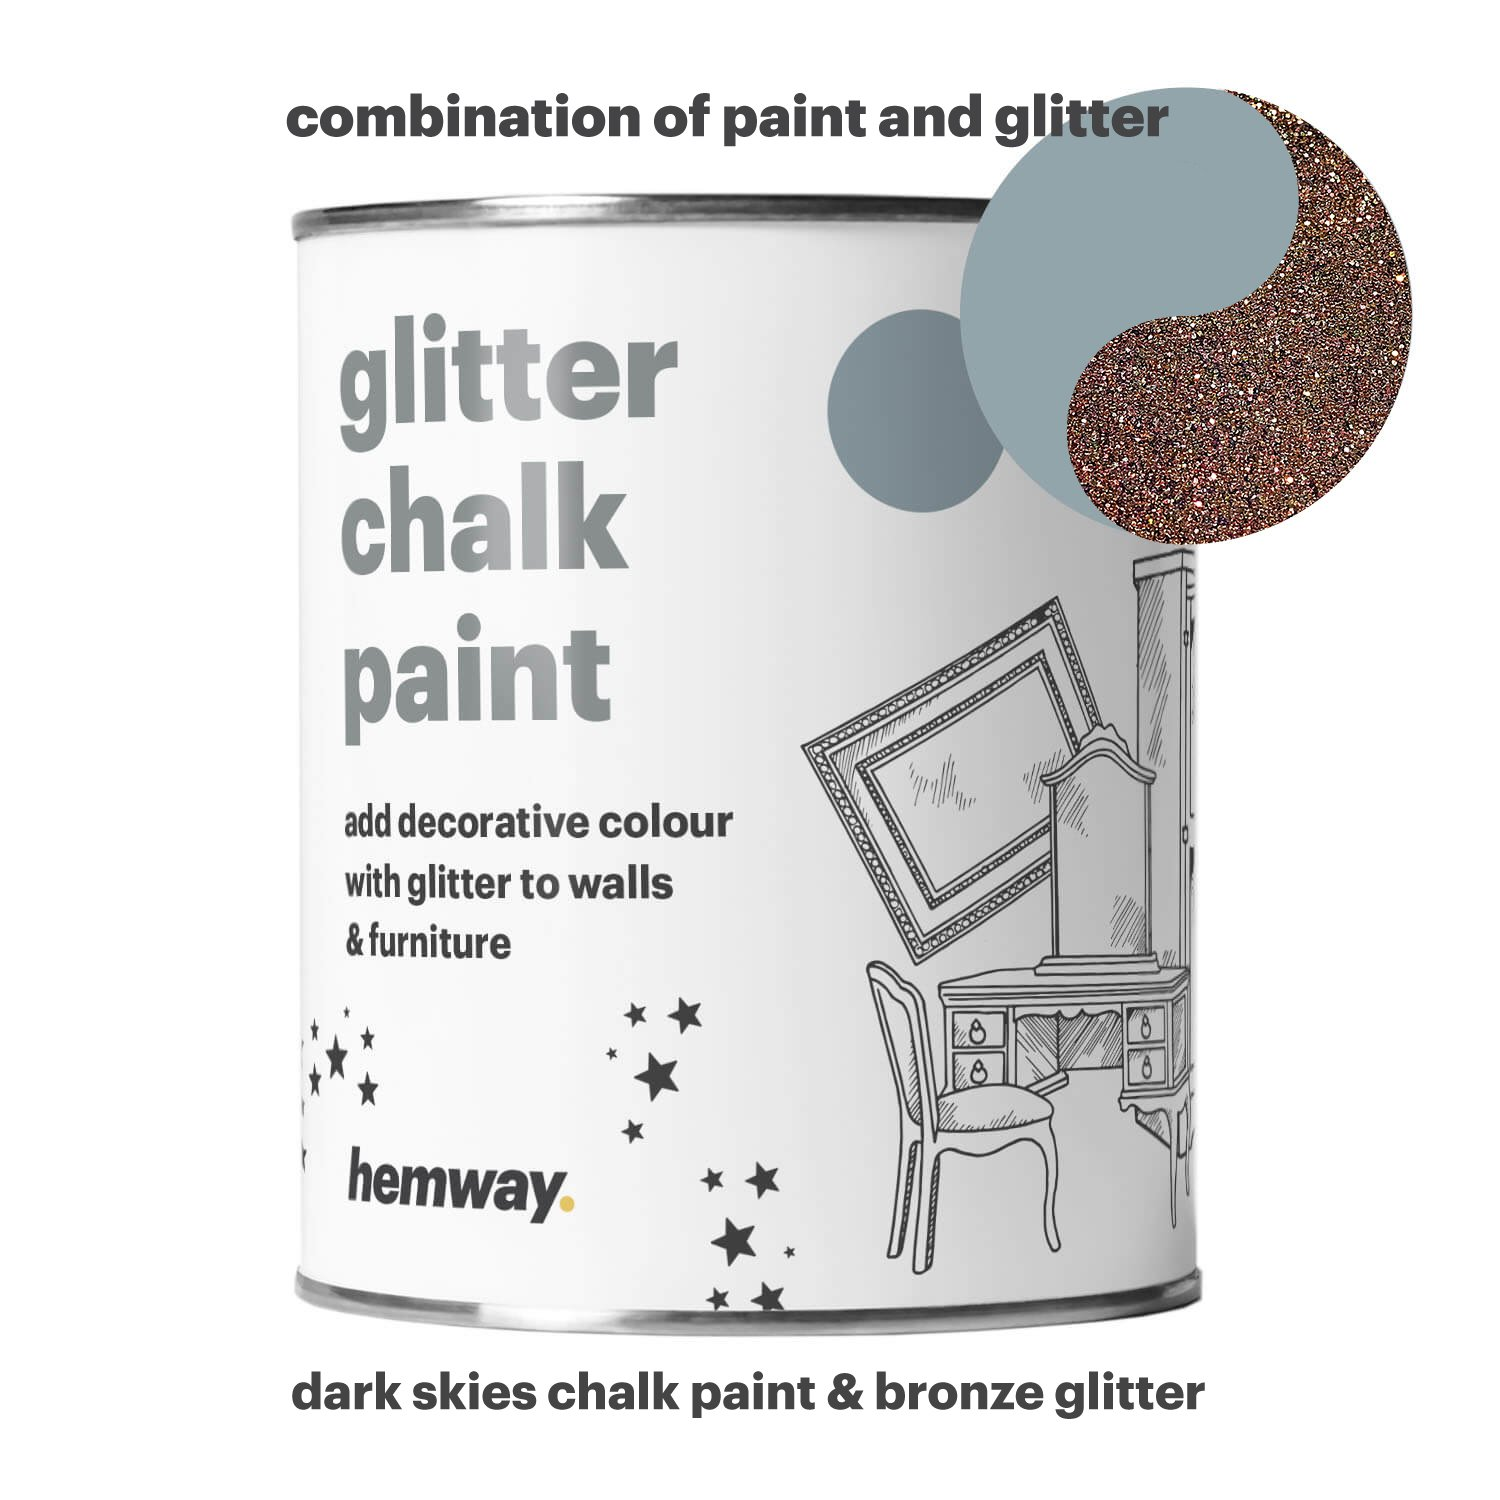 Hemway Dark Skies Chalk Paint (with Bronze Glitter) Sparkle Matt finish Wall and Furniture Paint 1L/35oz Shabby Chic Vintage Chalky Crystal (25 Glittery Colours Available)